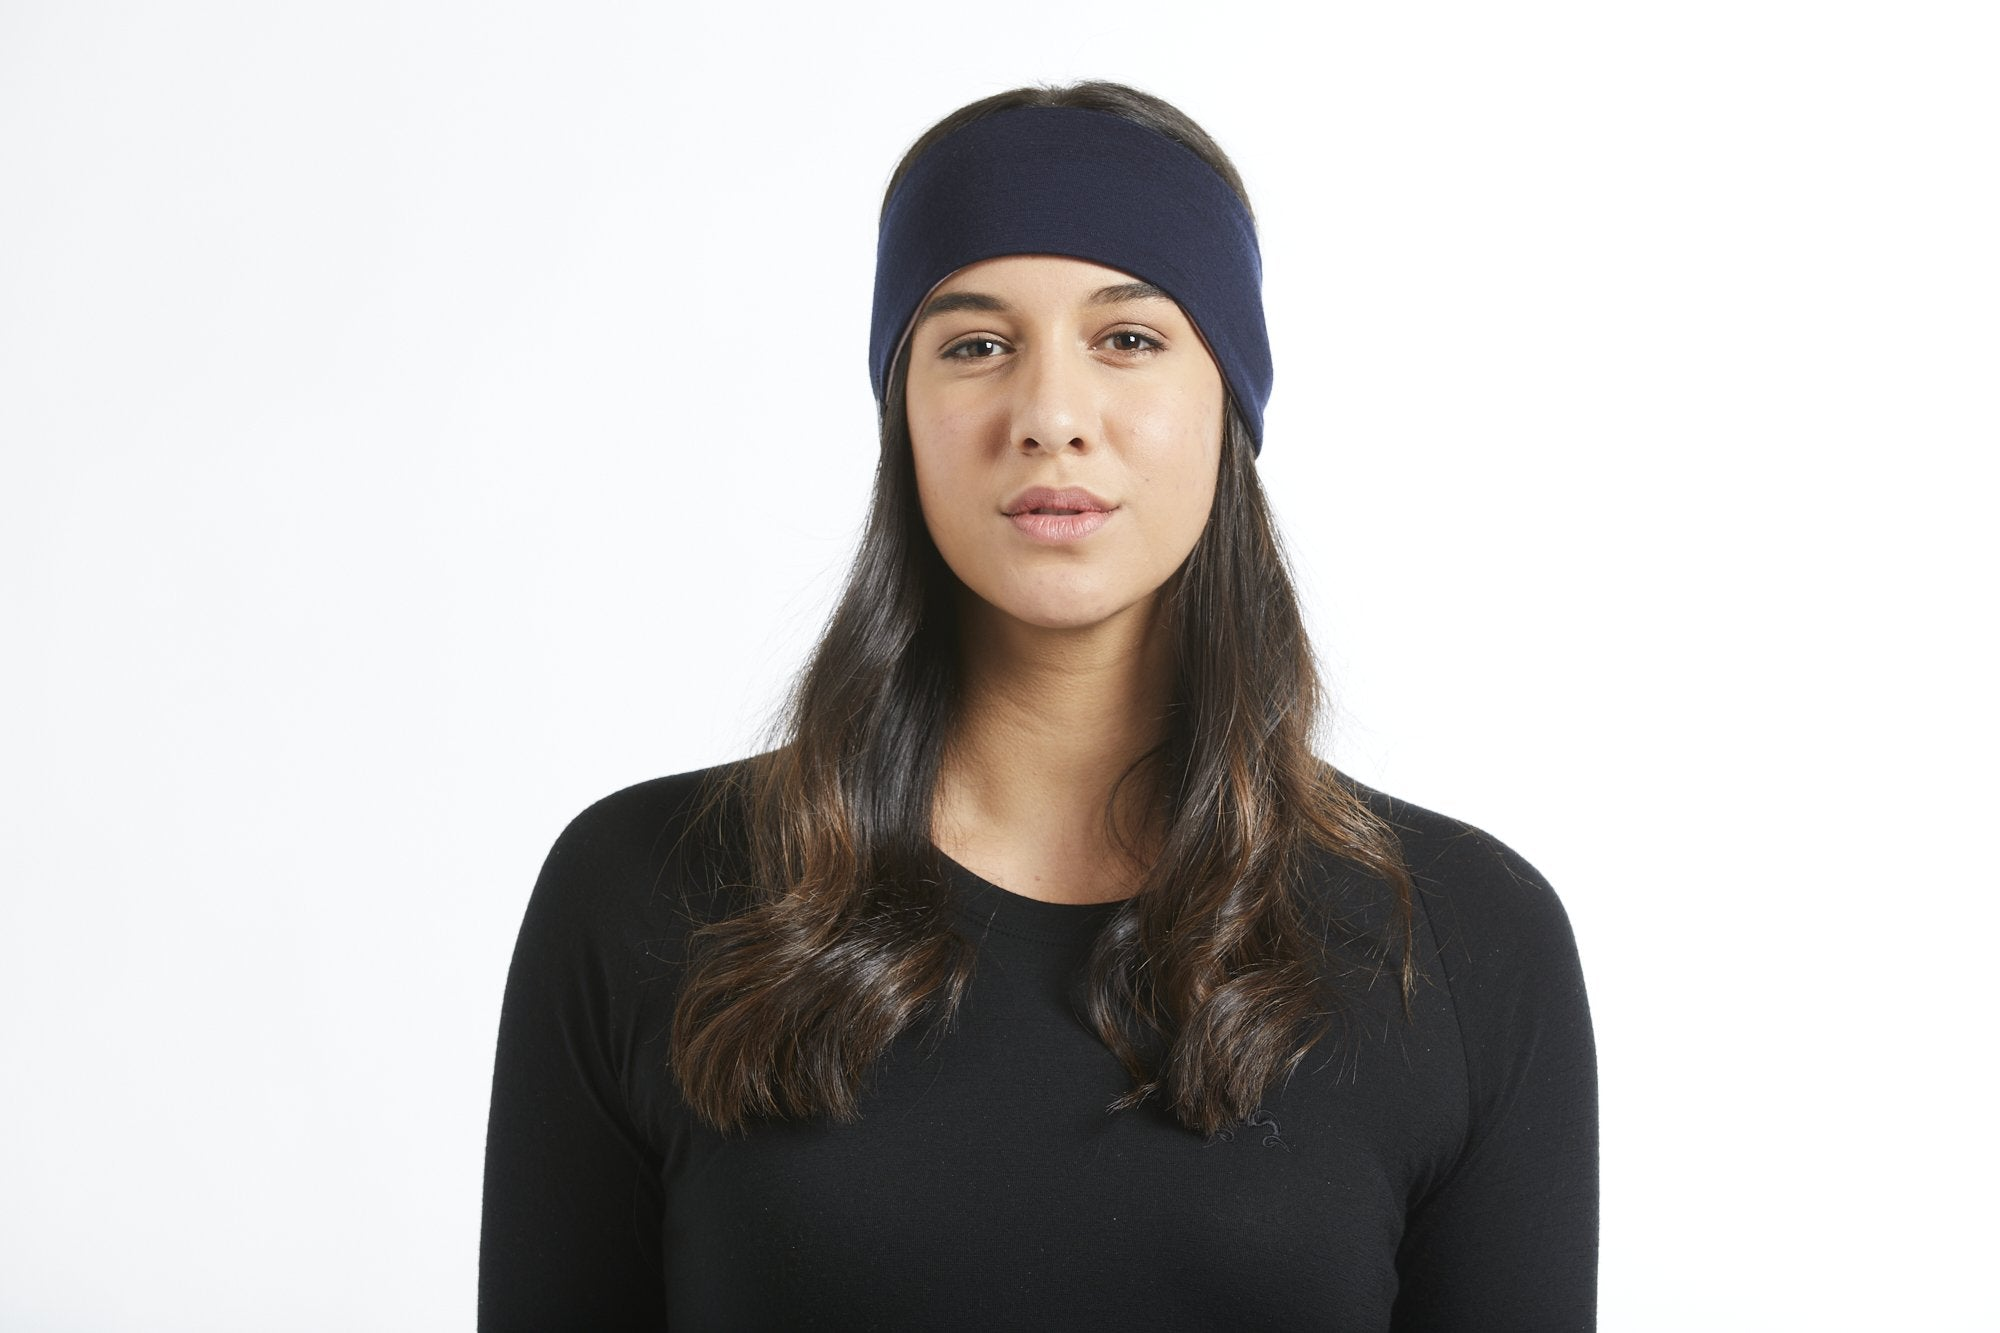 True Fleece merino wool head band